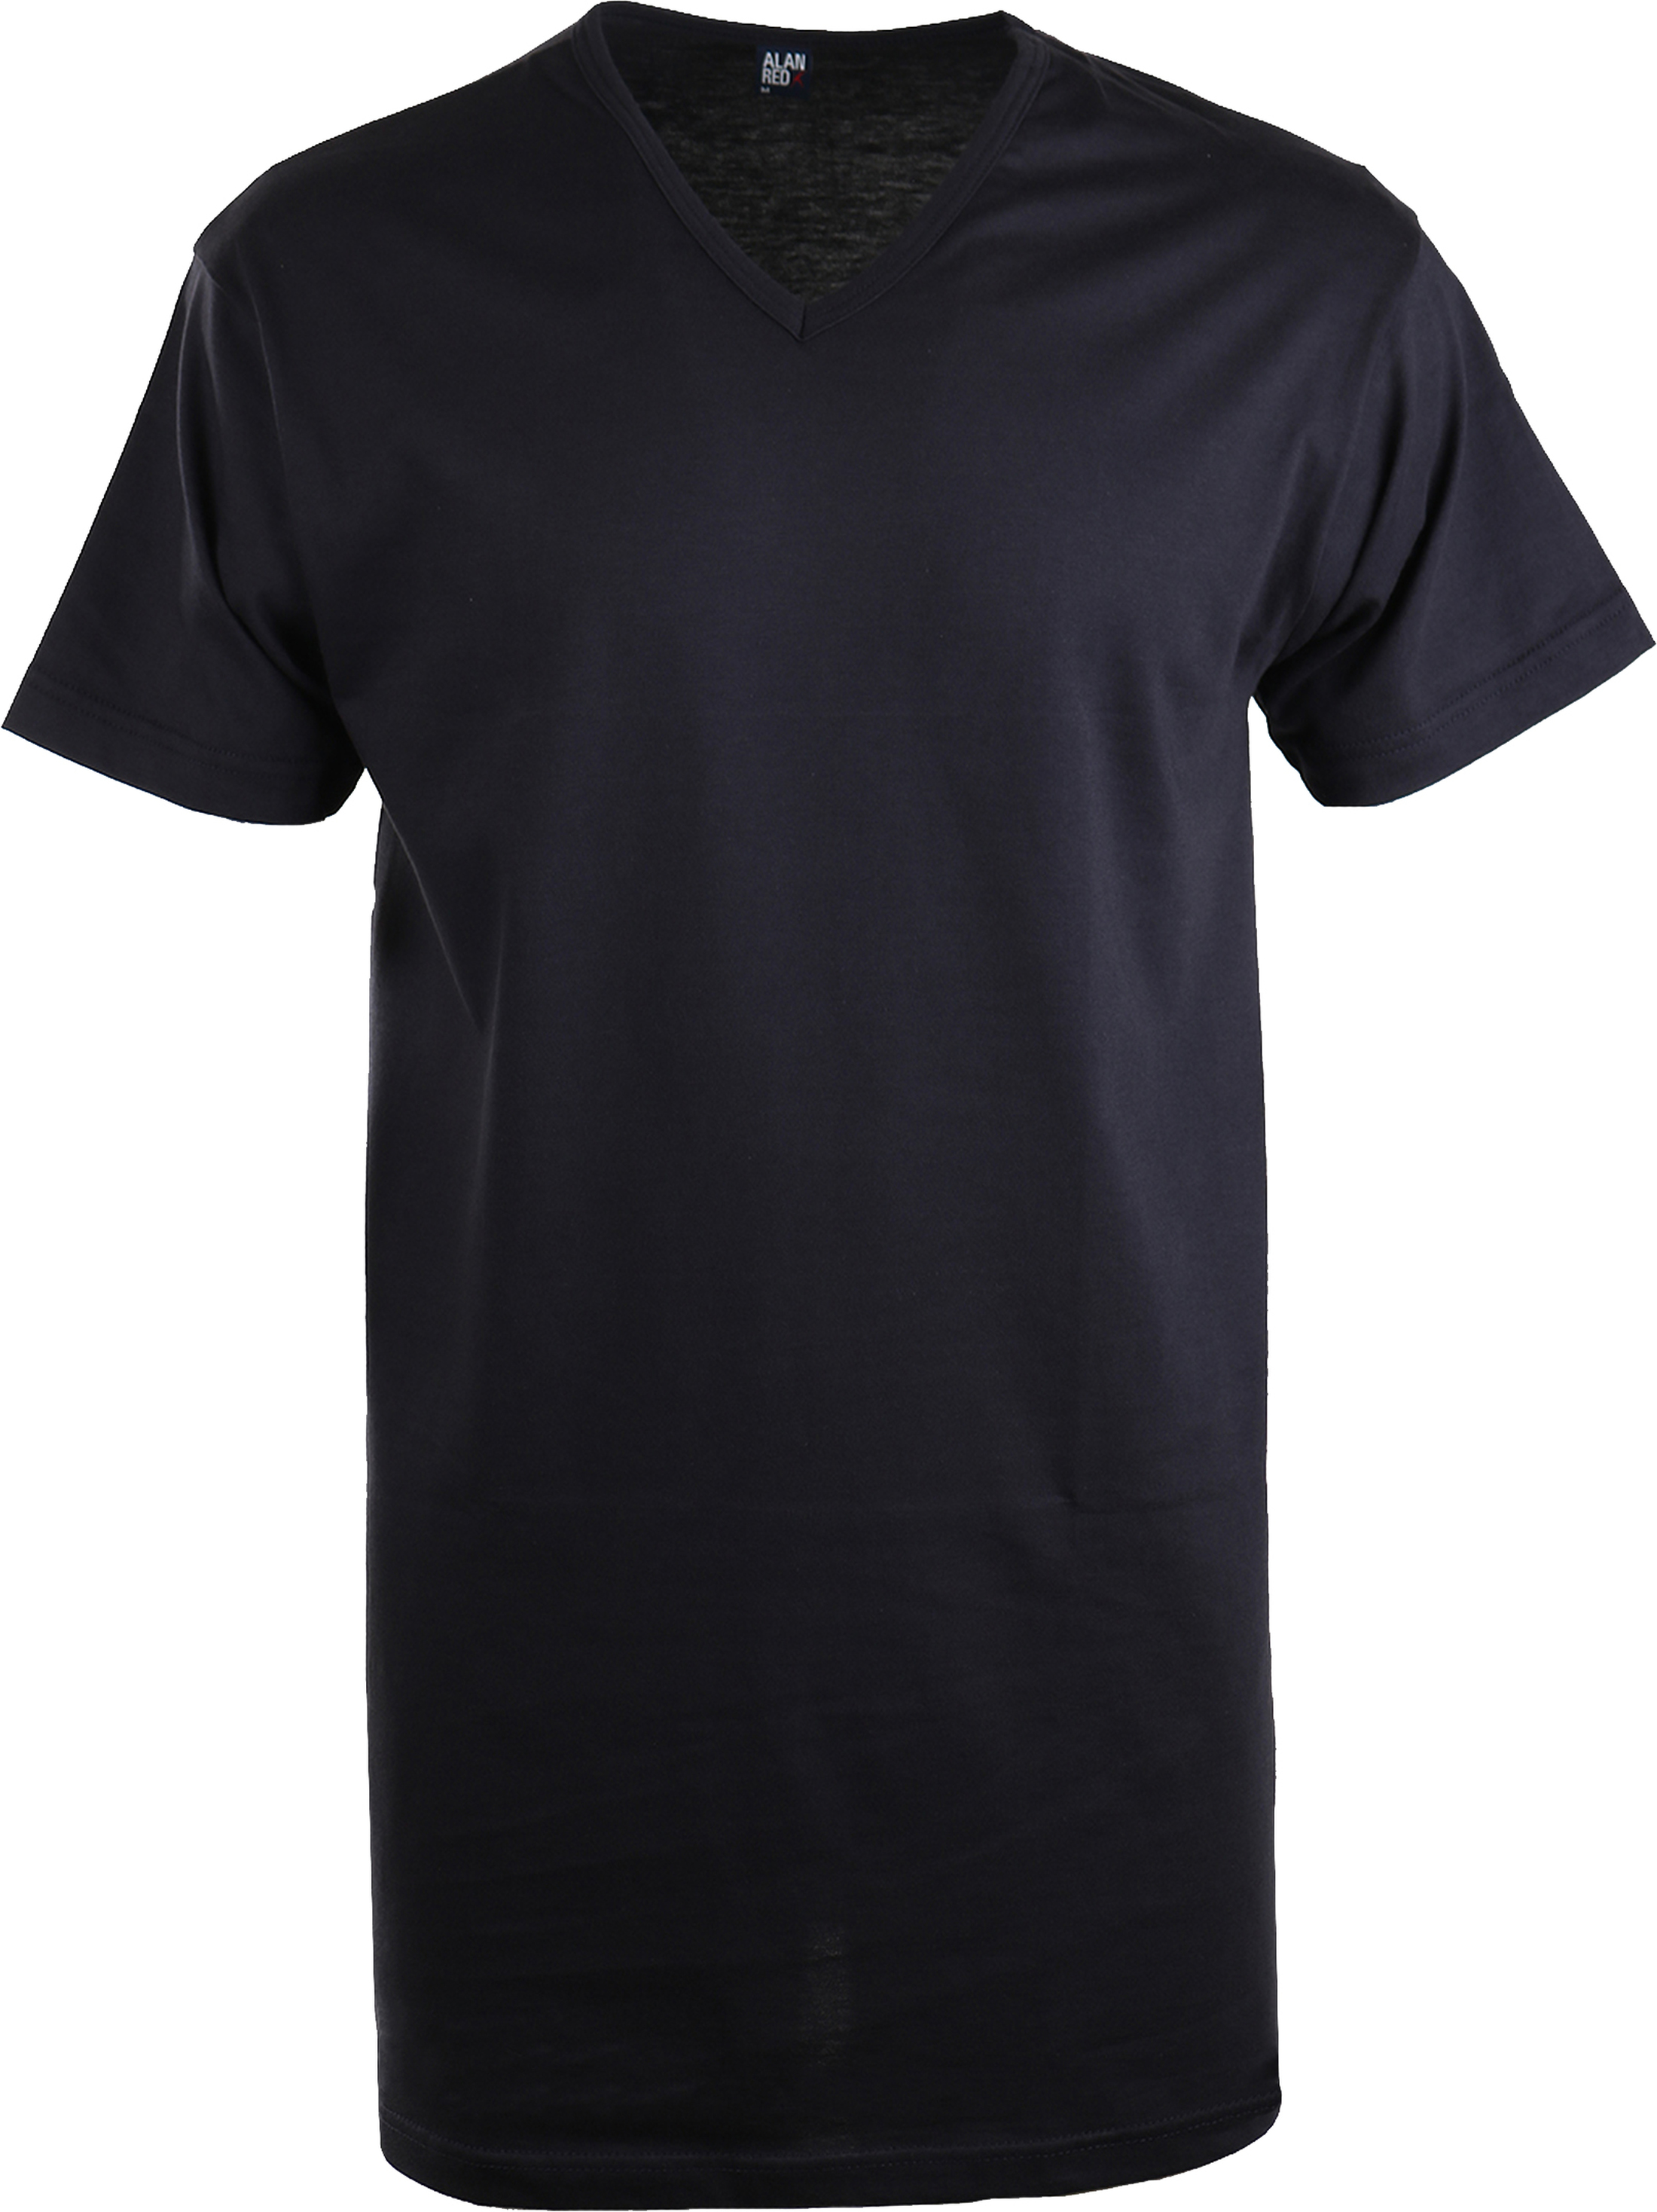 Alan Red Extra Long T-Shirt Vermont Navy (1pack) foto 0